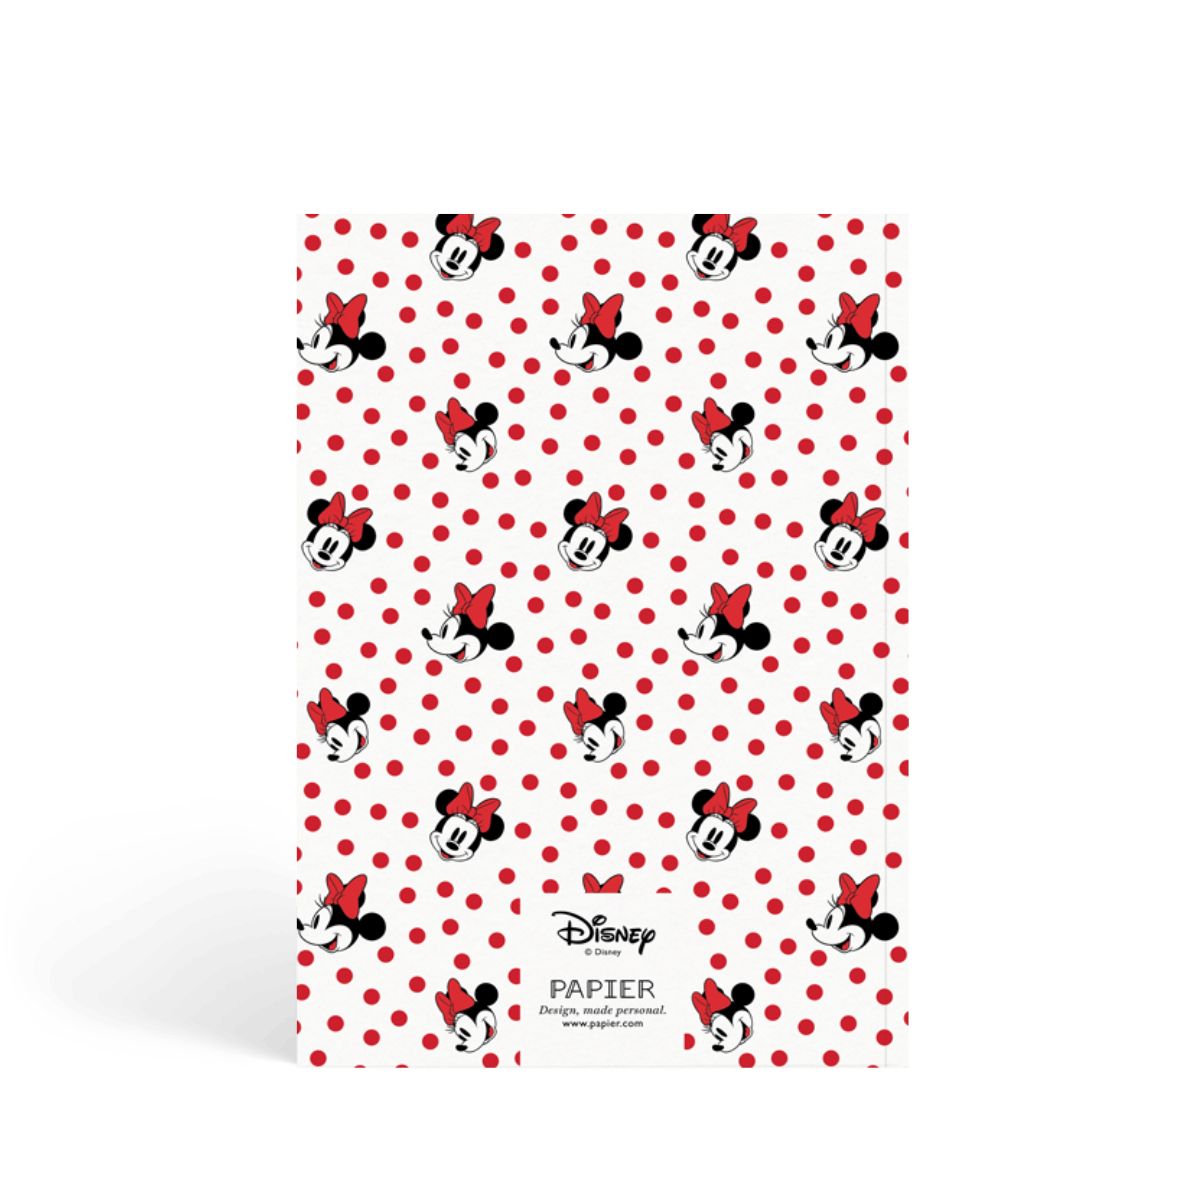 Https%3a%2f%2fwww.papier.com%2fproduct image%2f56028%2f5%2fminnie mouse 13461 back 1568024615.png?ixlib=rb 1.1